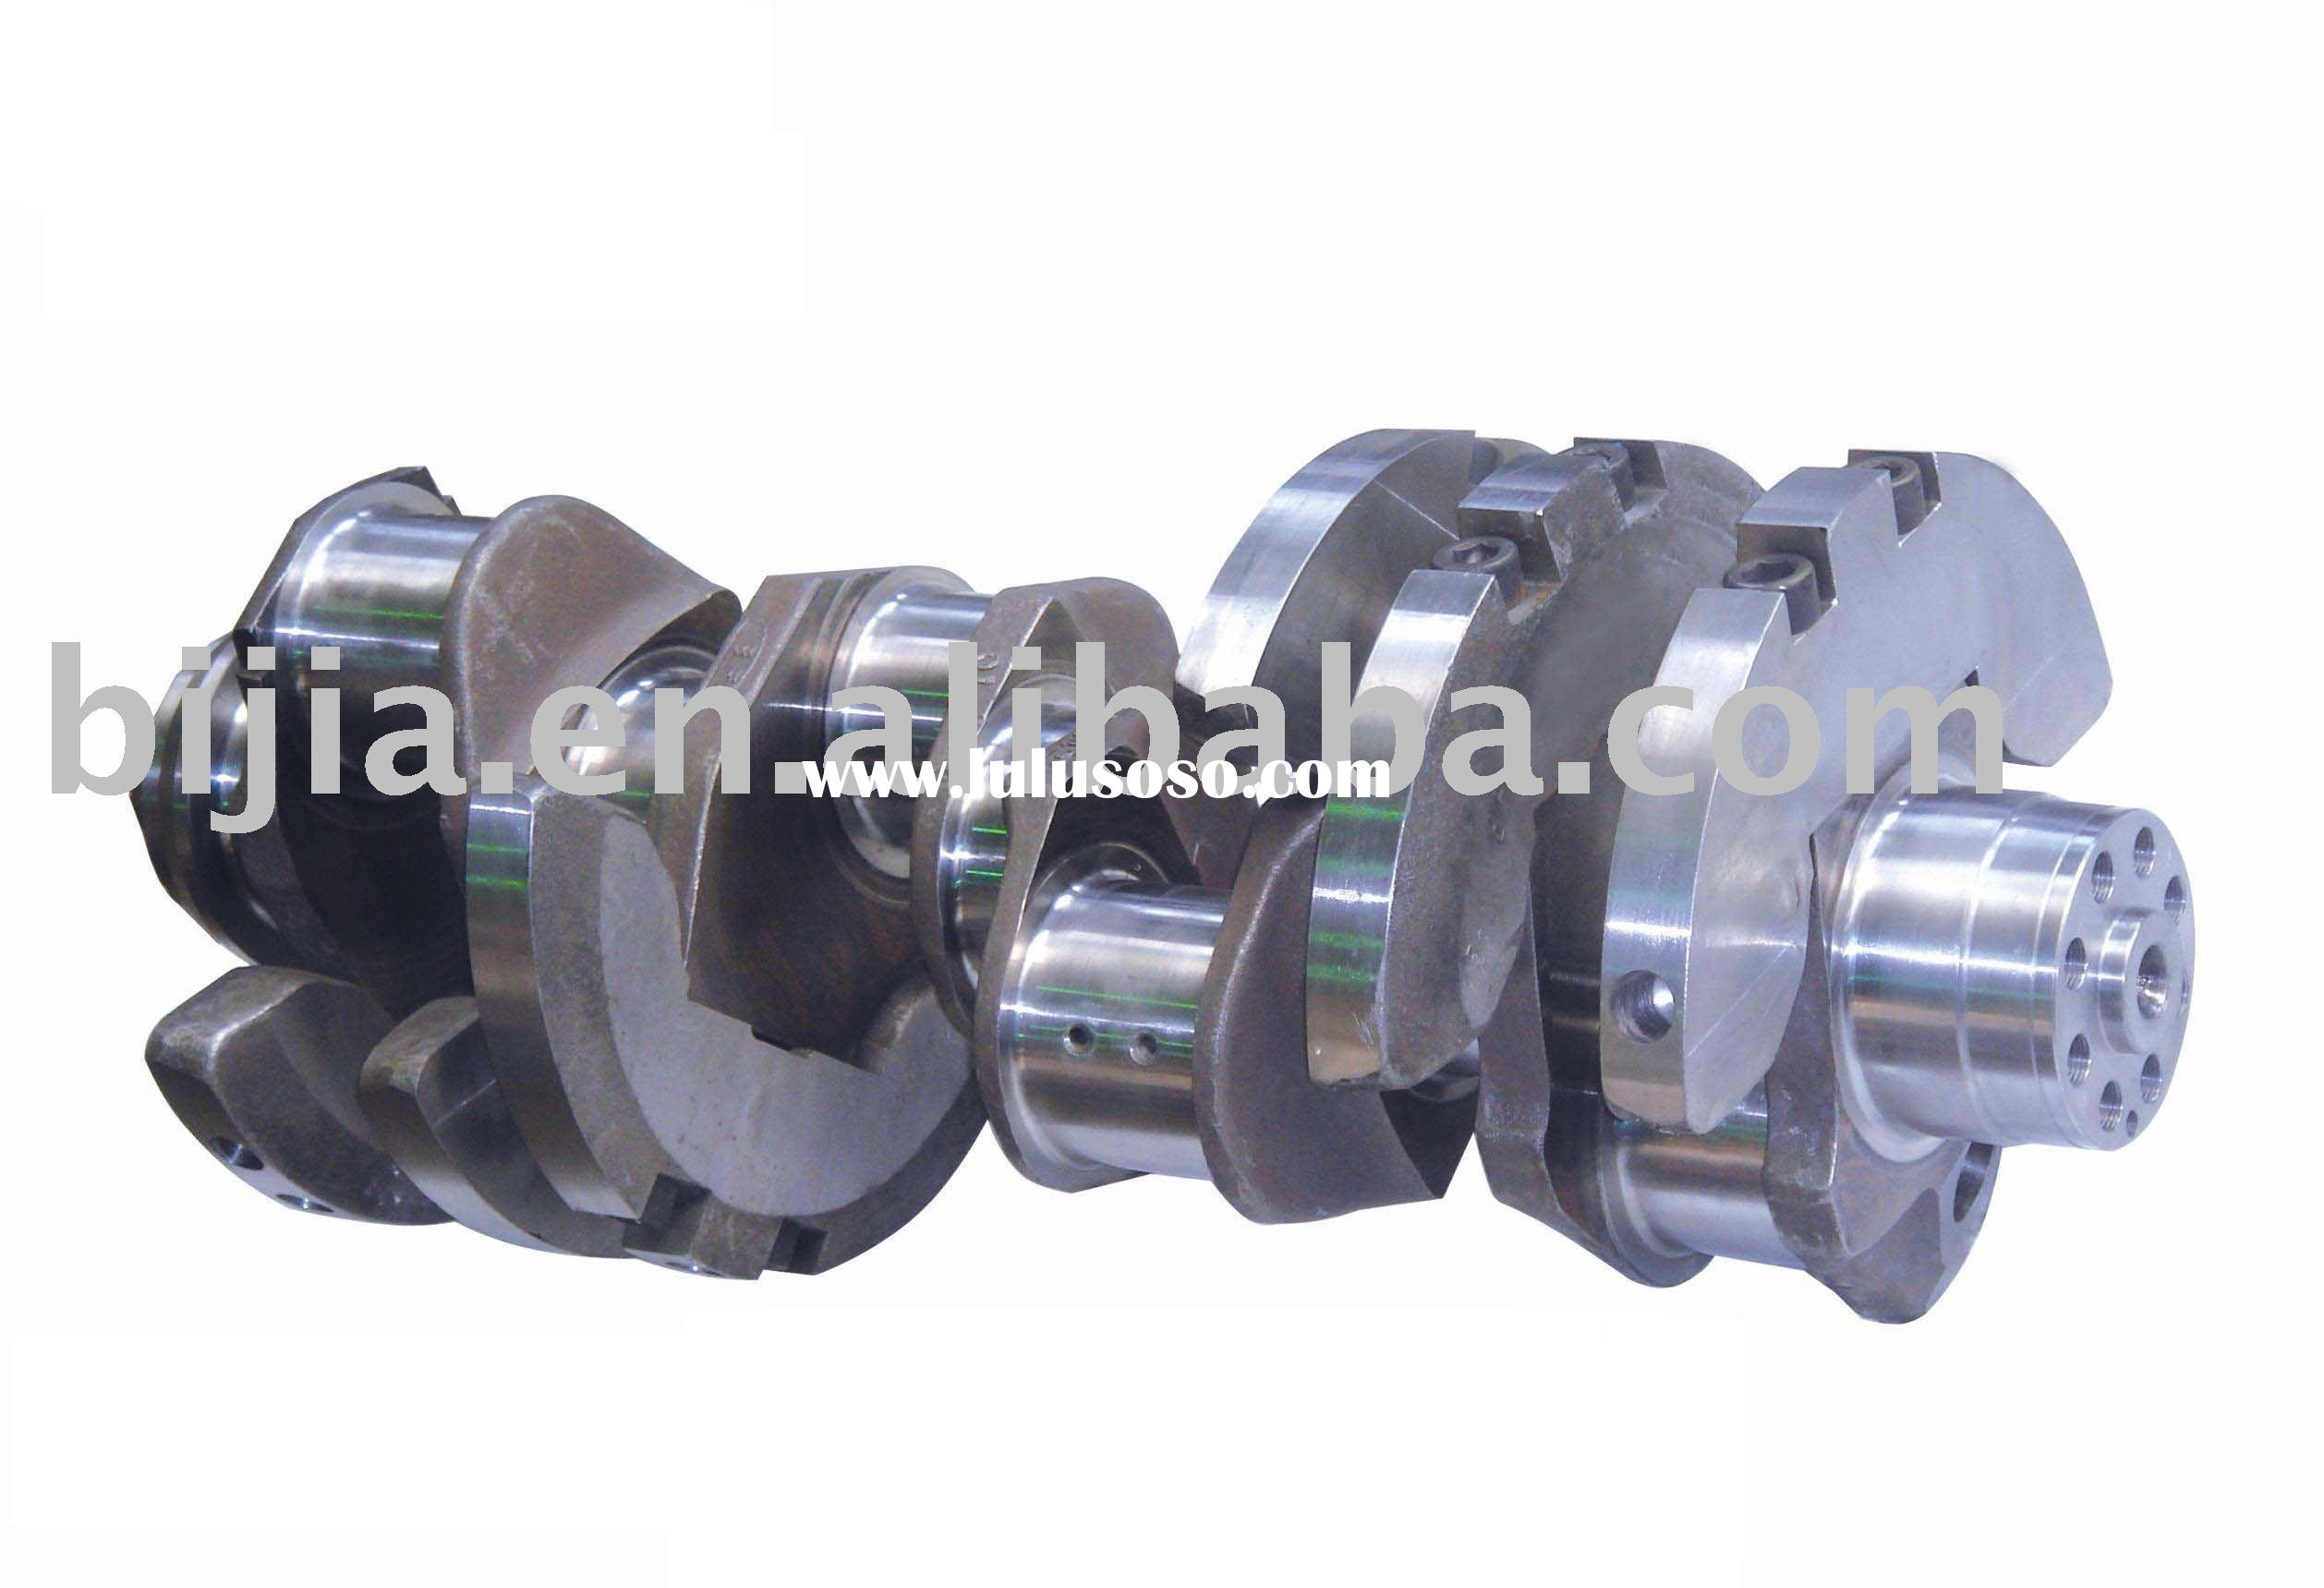 Car Crankshaft OM442 For Mercedes Benz, Forged Steel